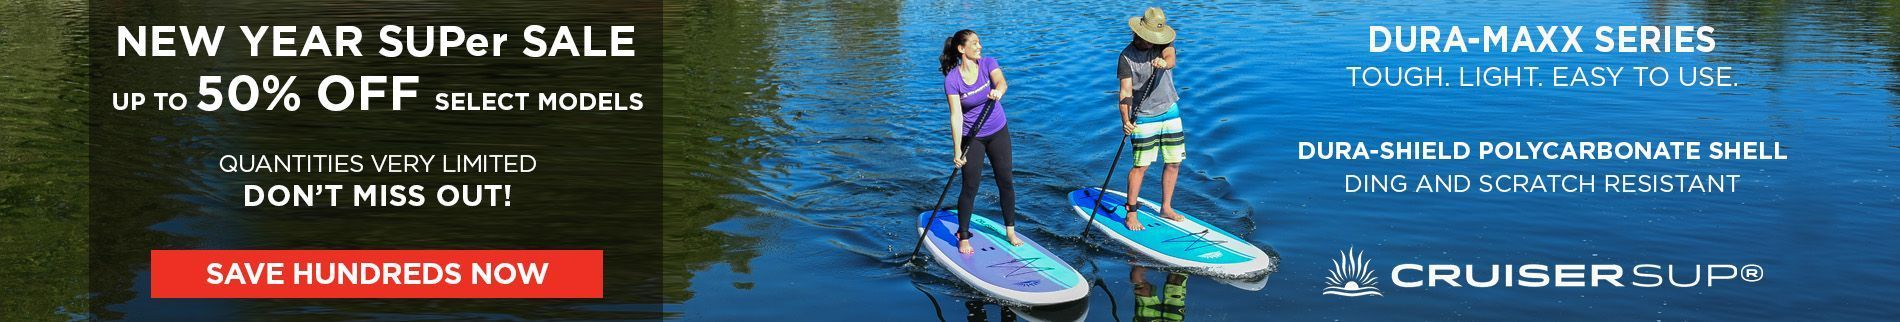 Dura-Maxx Stand Up Paddle Boards